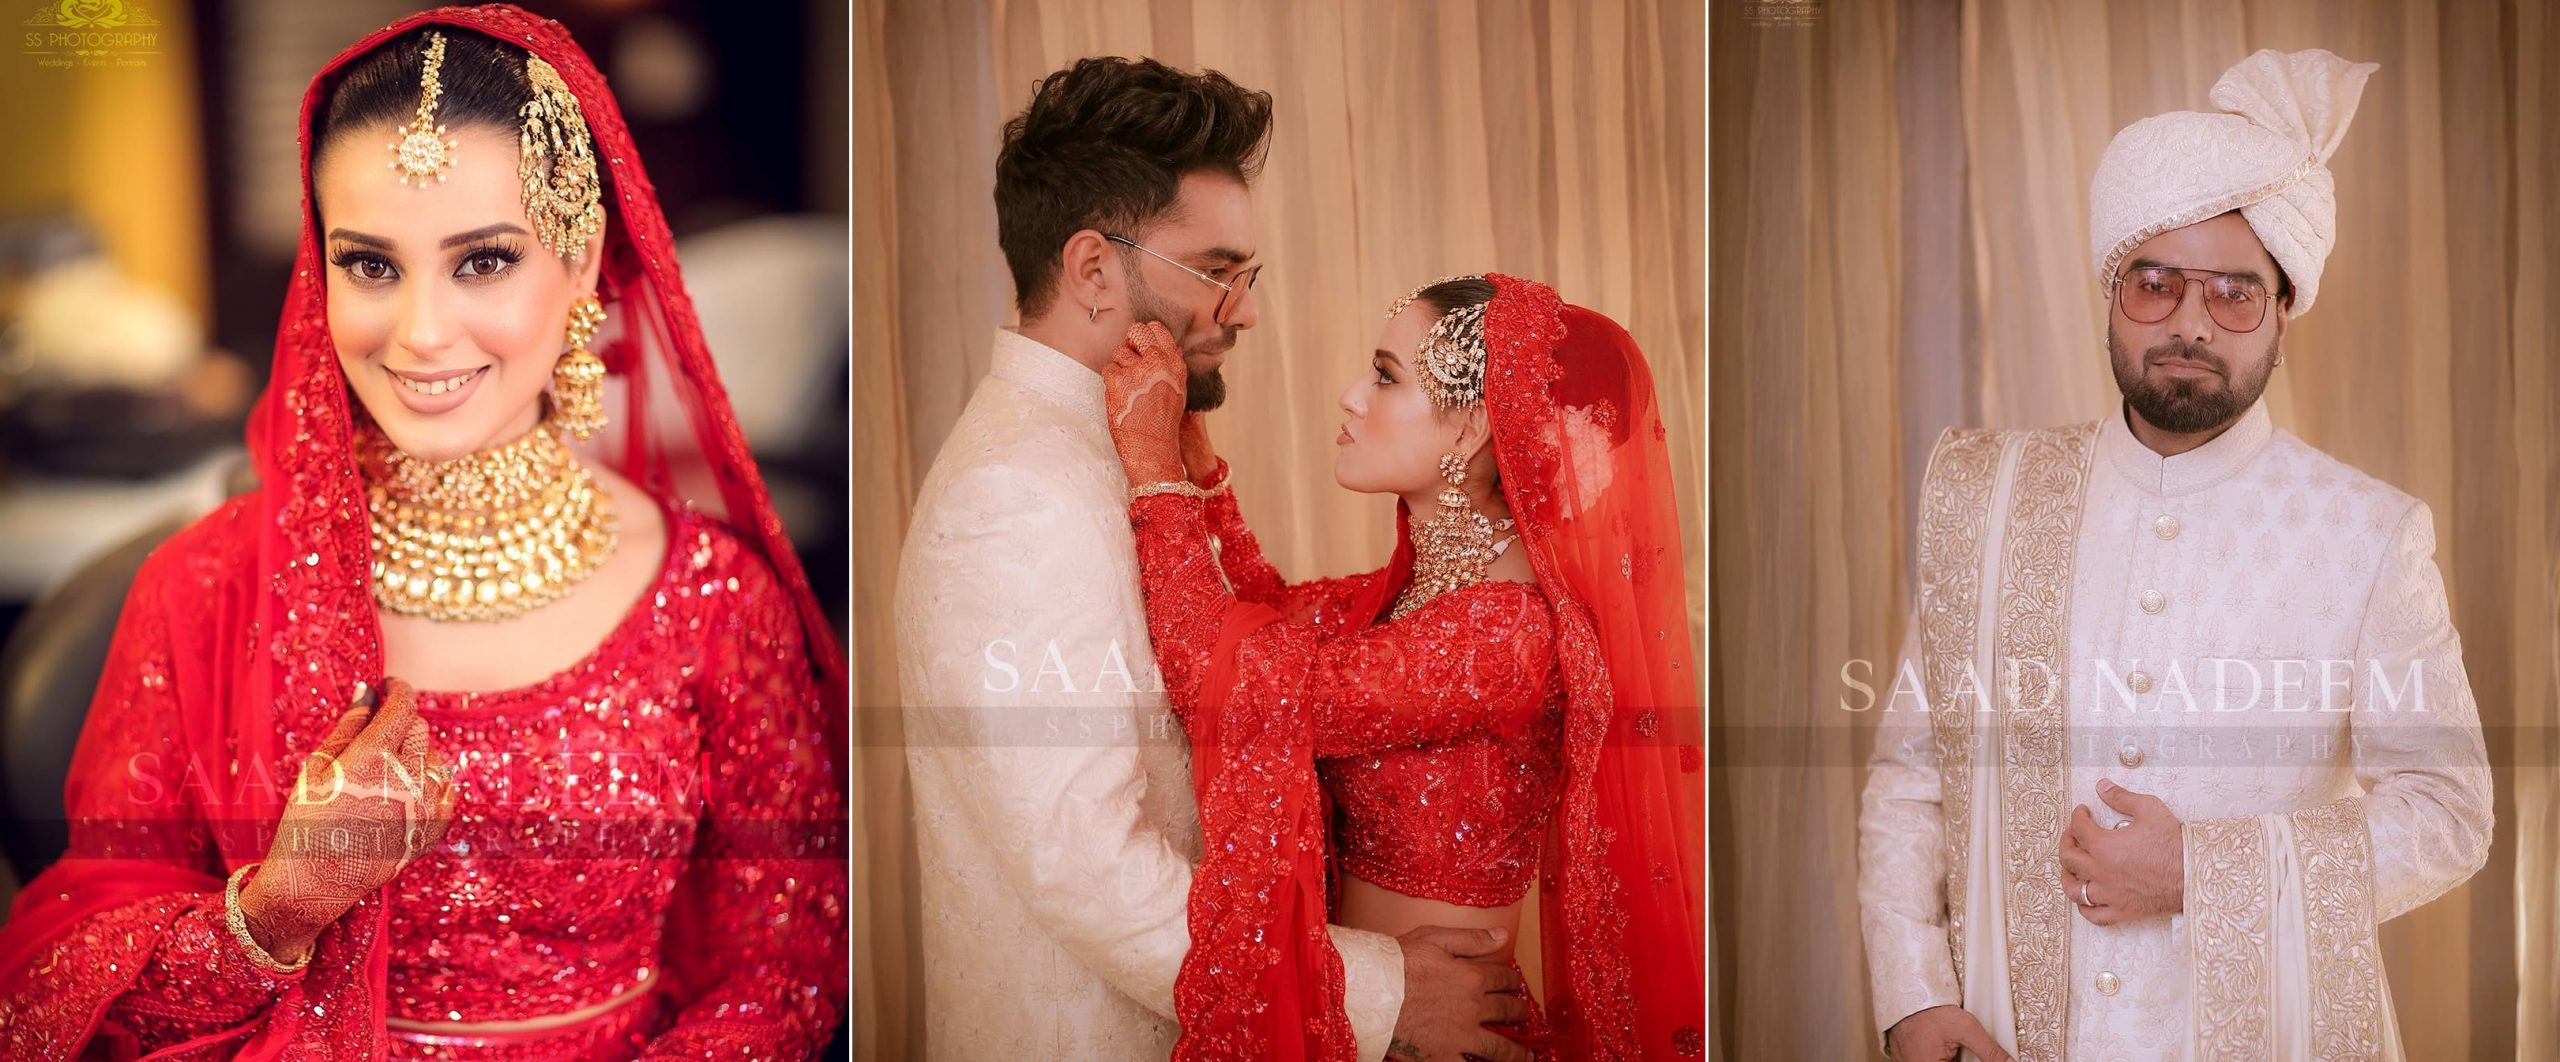 Iqra Aziz and Yasir Hussain Wedding Pictures (2)